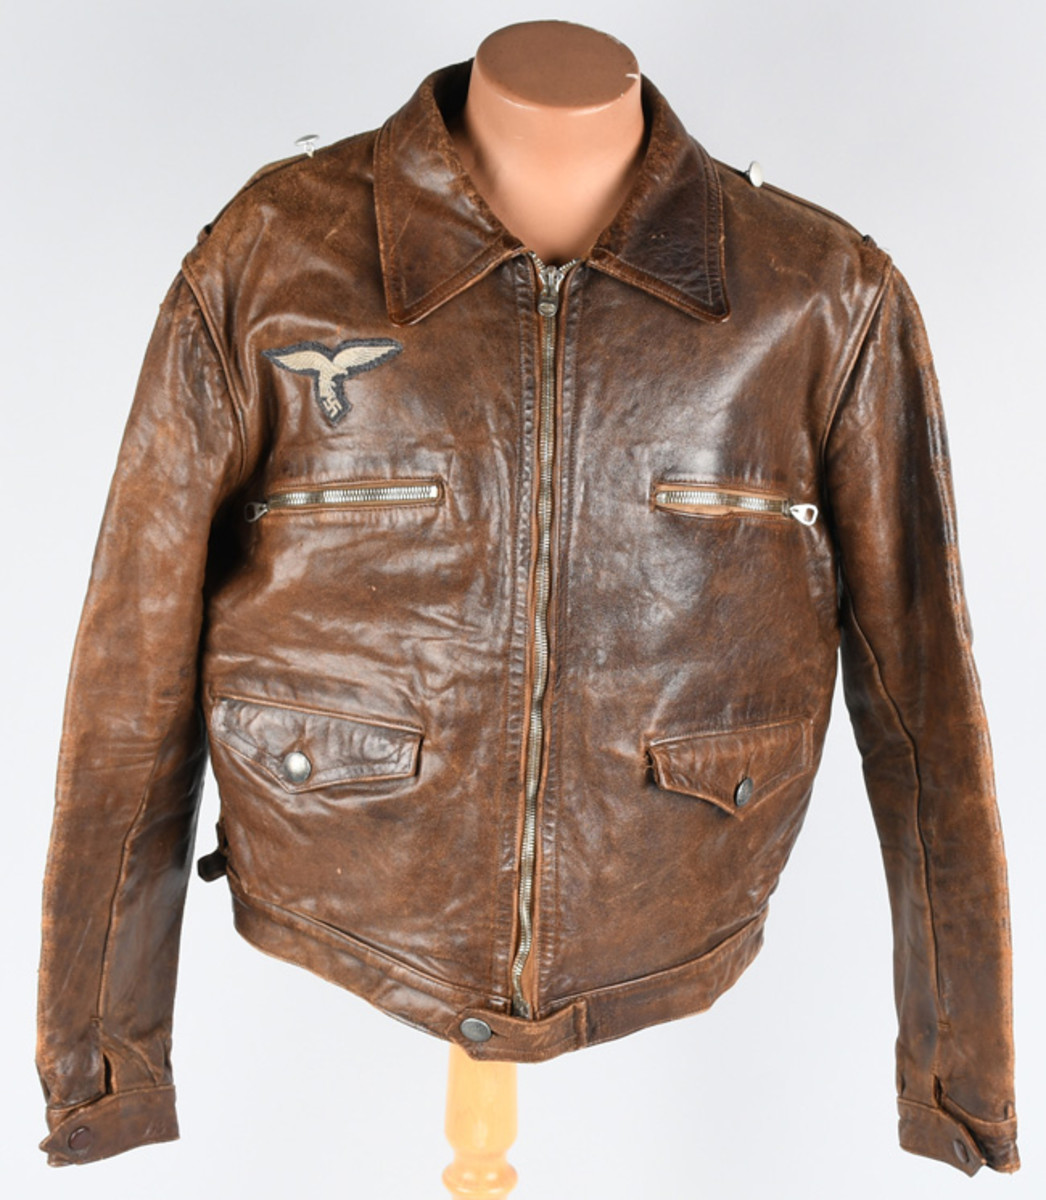 WWII Nazi German Luftwaffe ace pilot Josef Priller's leather flight jacket, $9,300